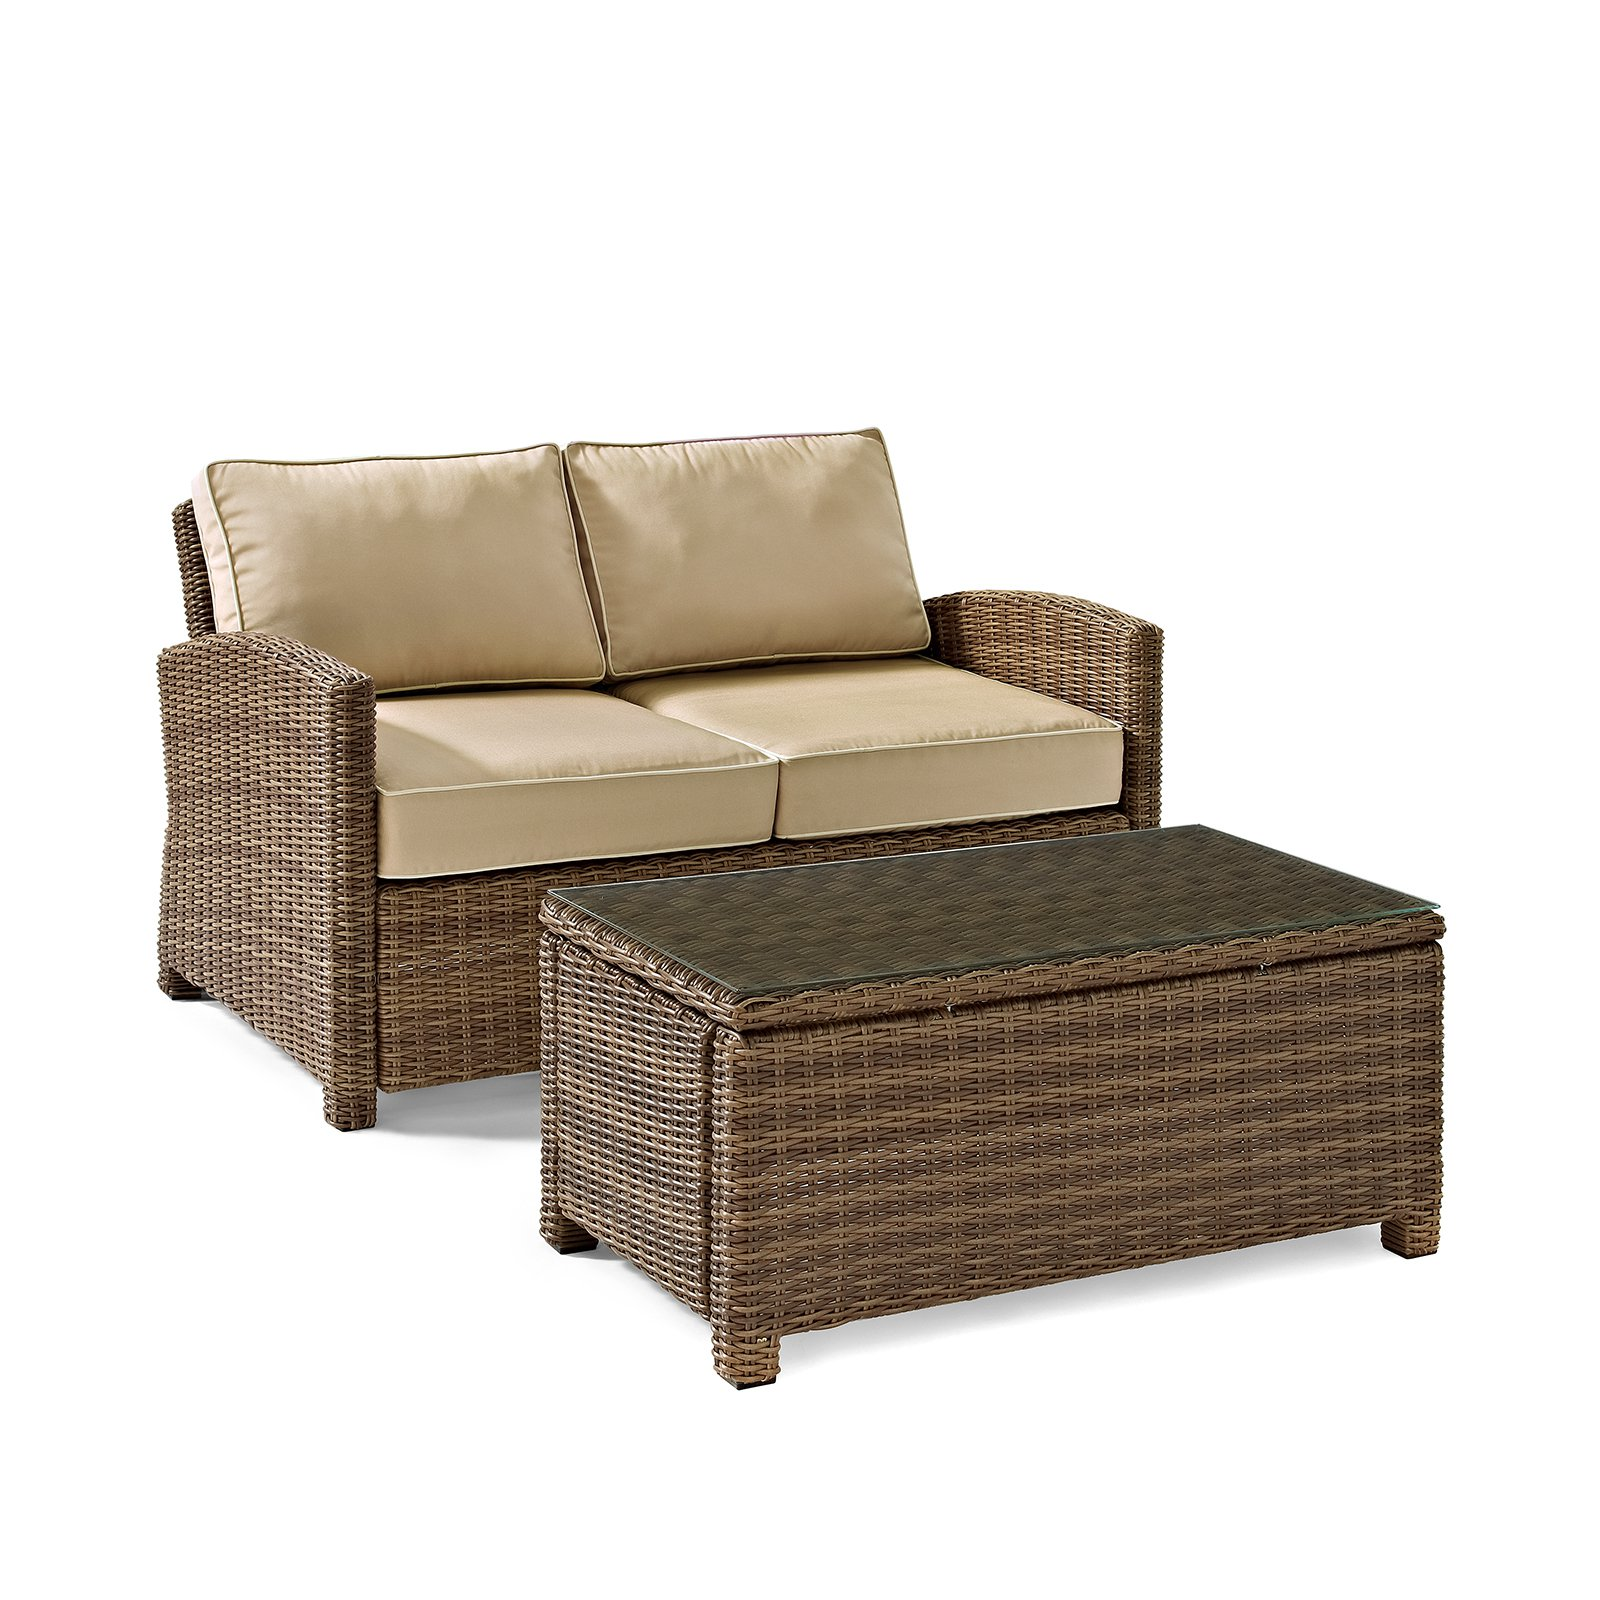 Outdoor Sectionals. Small Space Sets